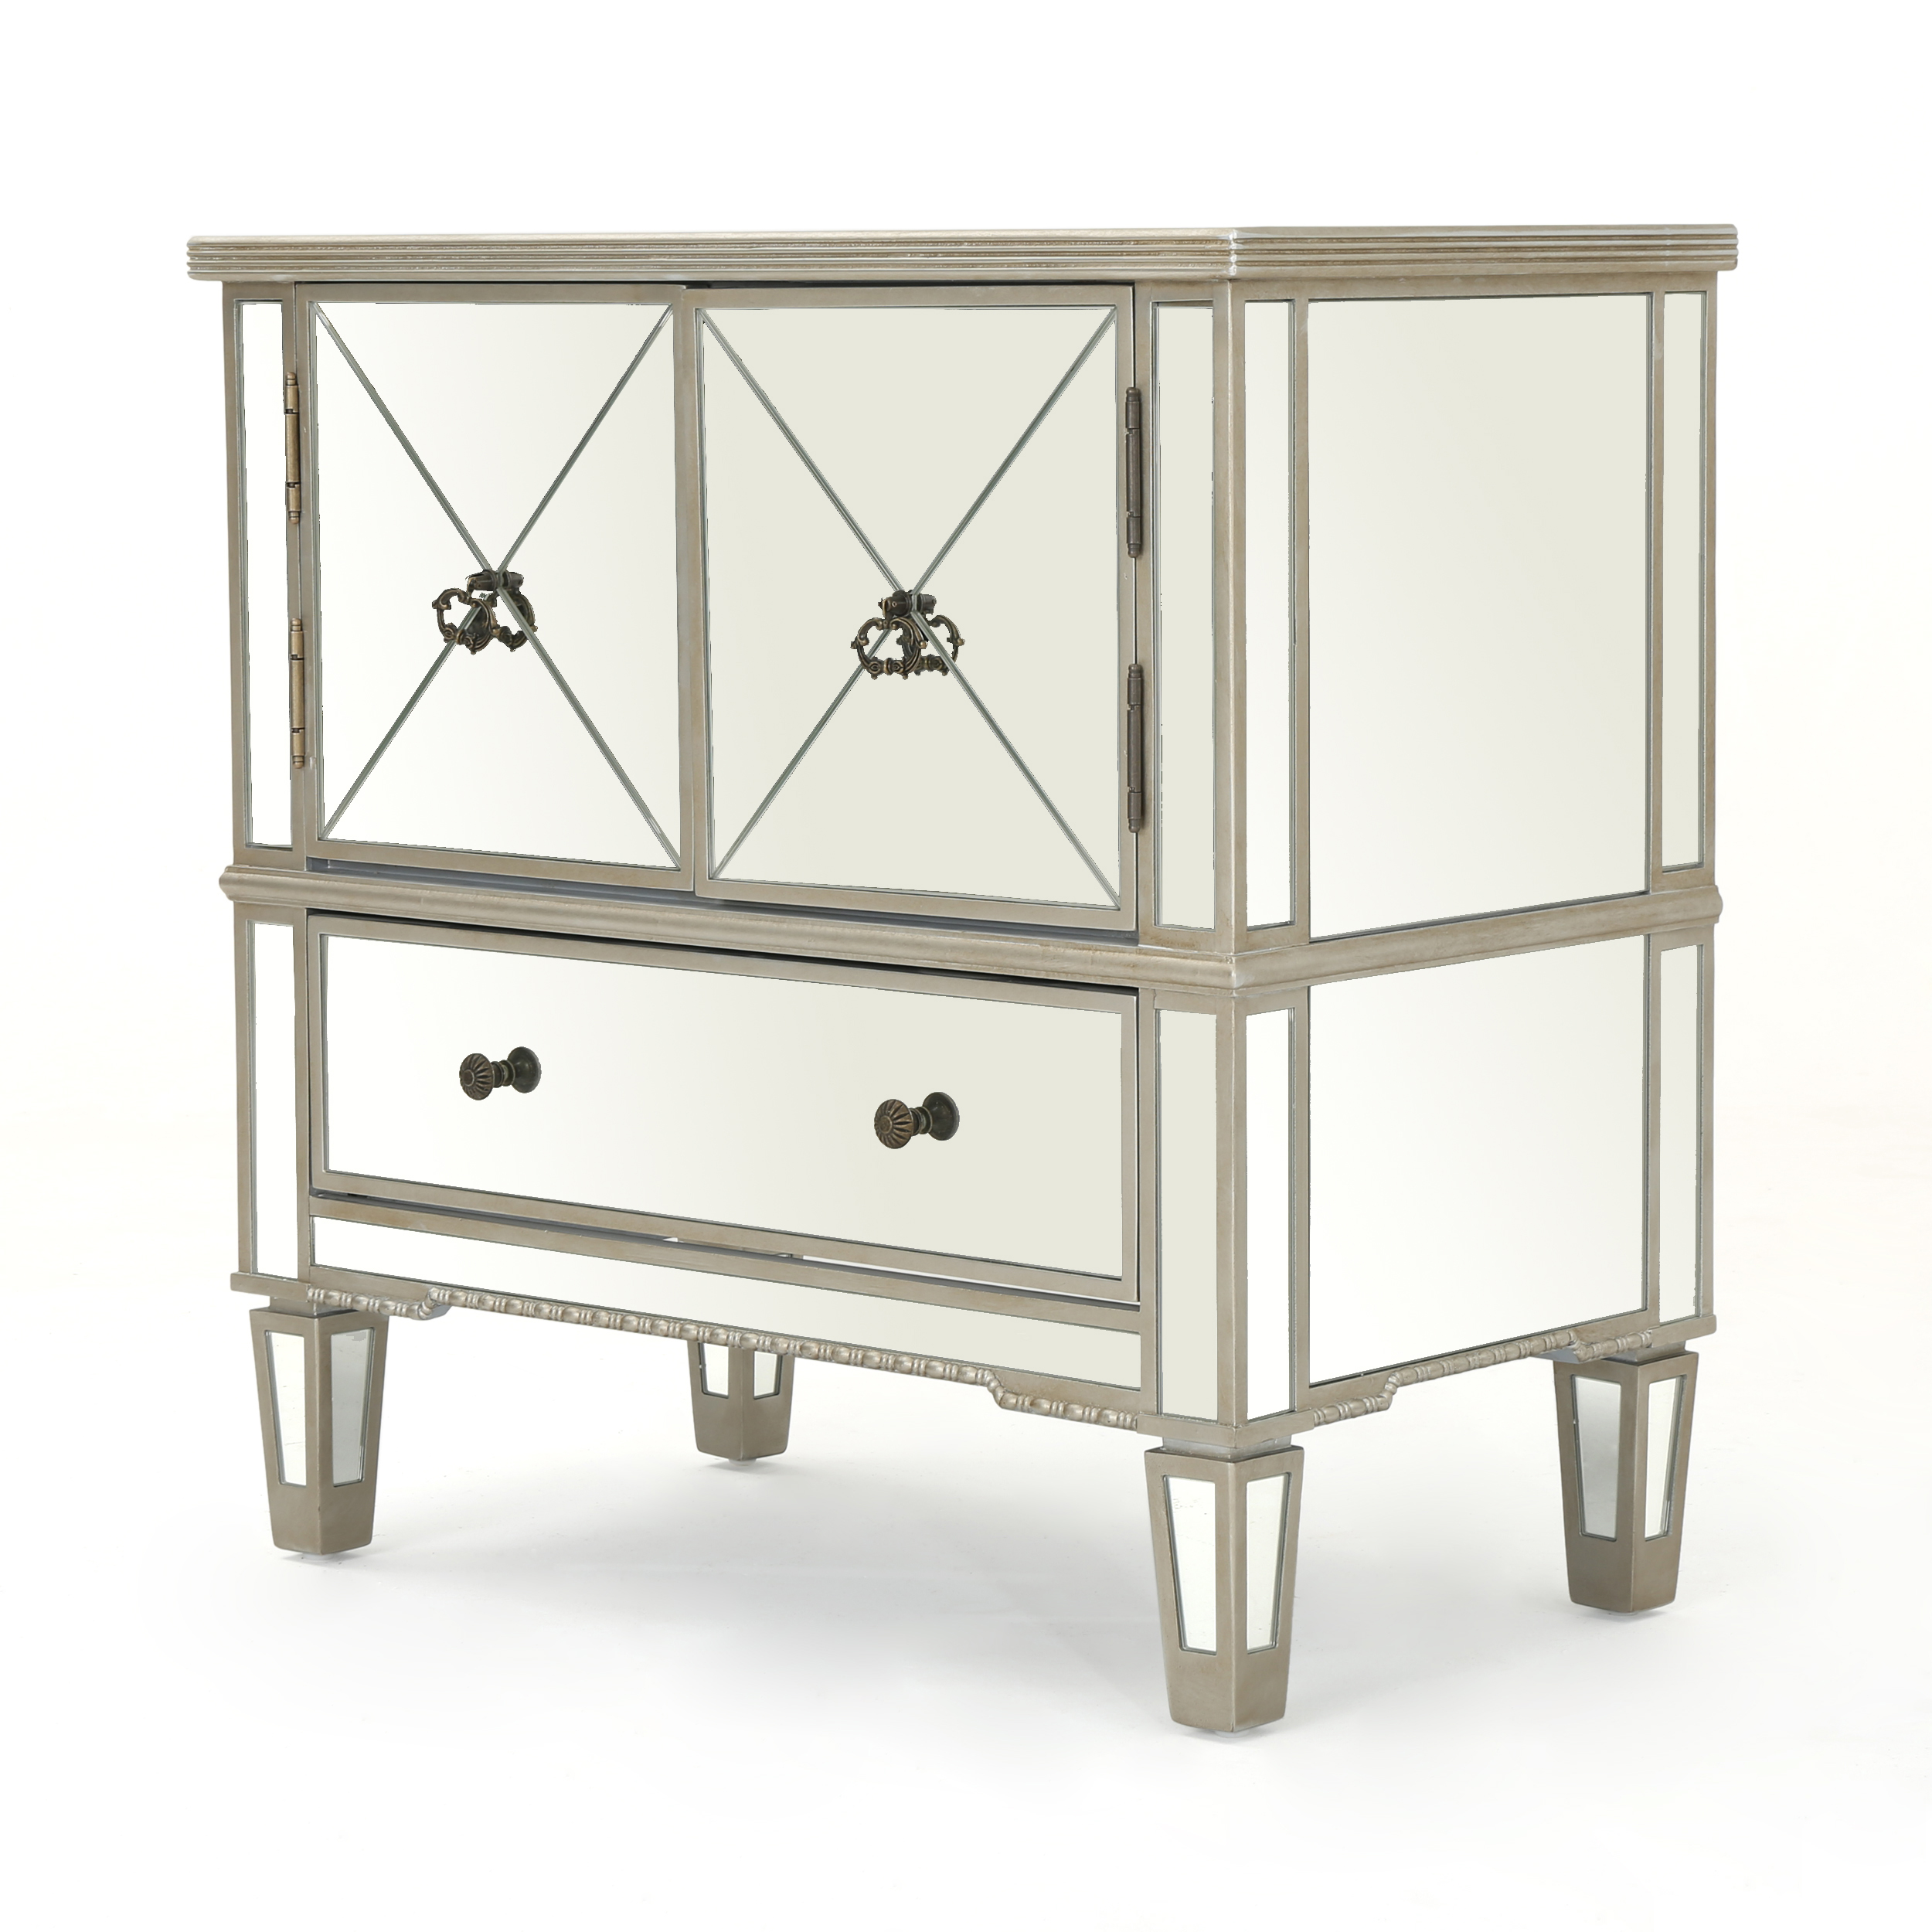 Ryley Mirrored 3 Drawer Cabinet with Faux Wood Frame, Silver